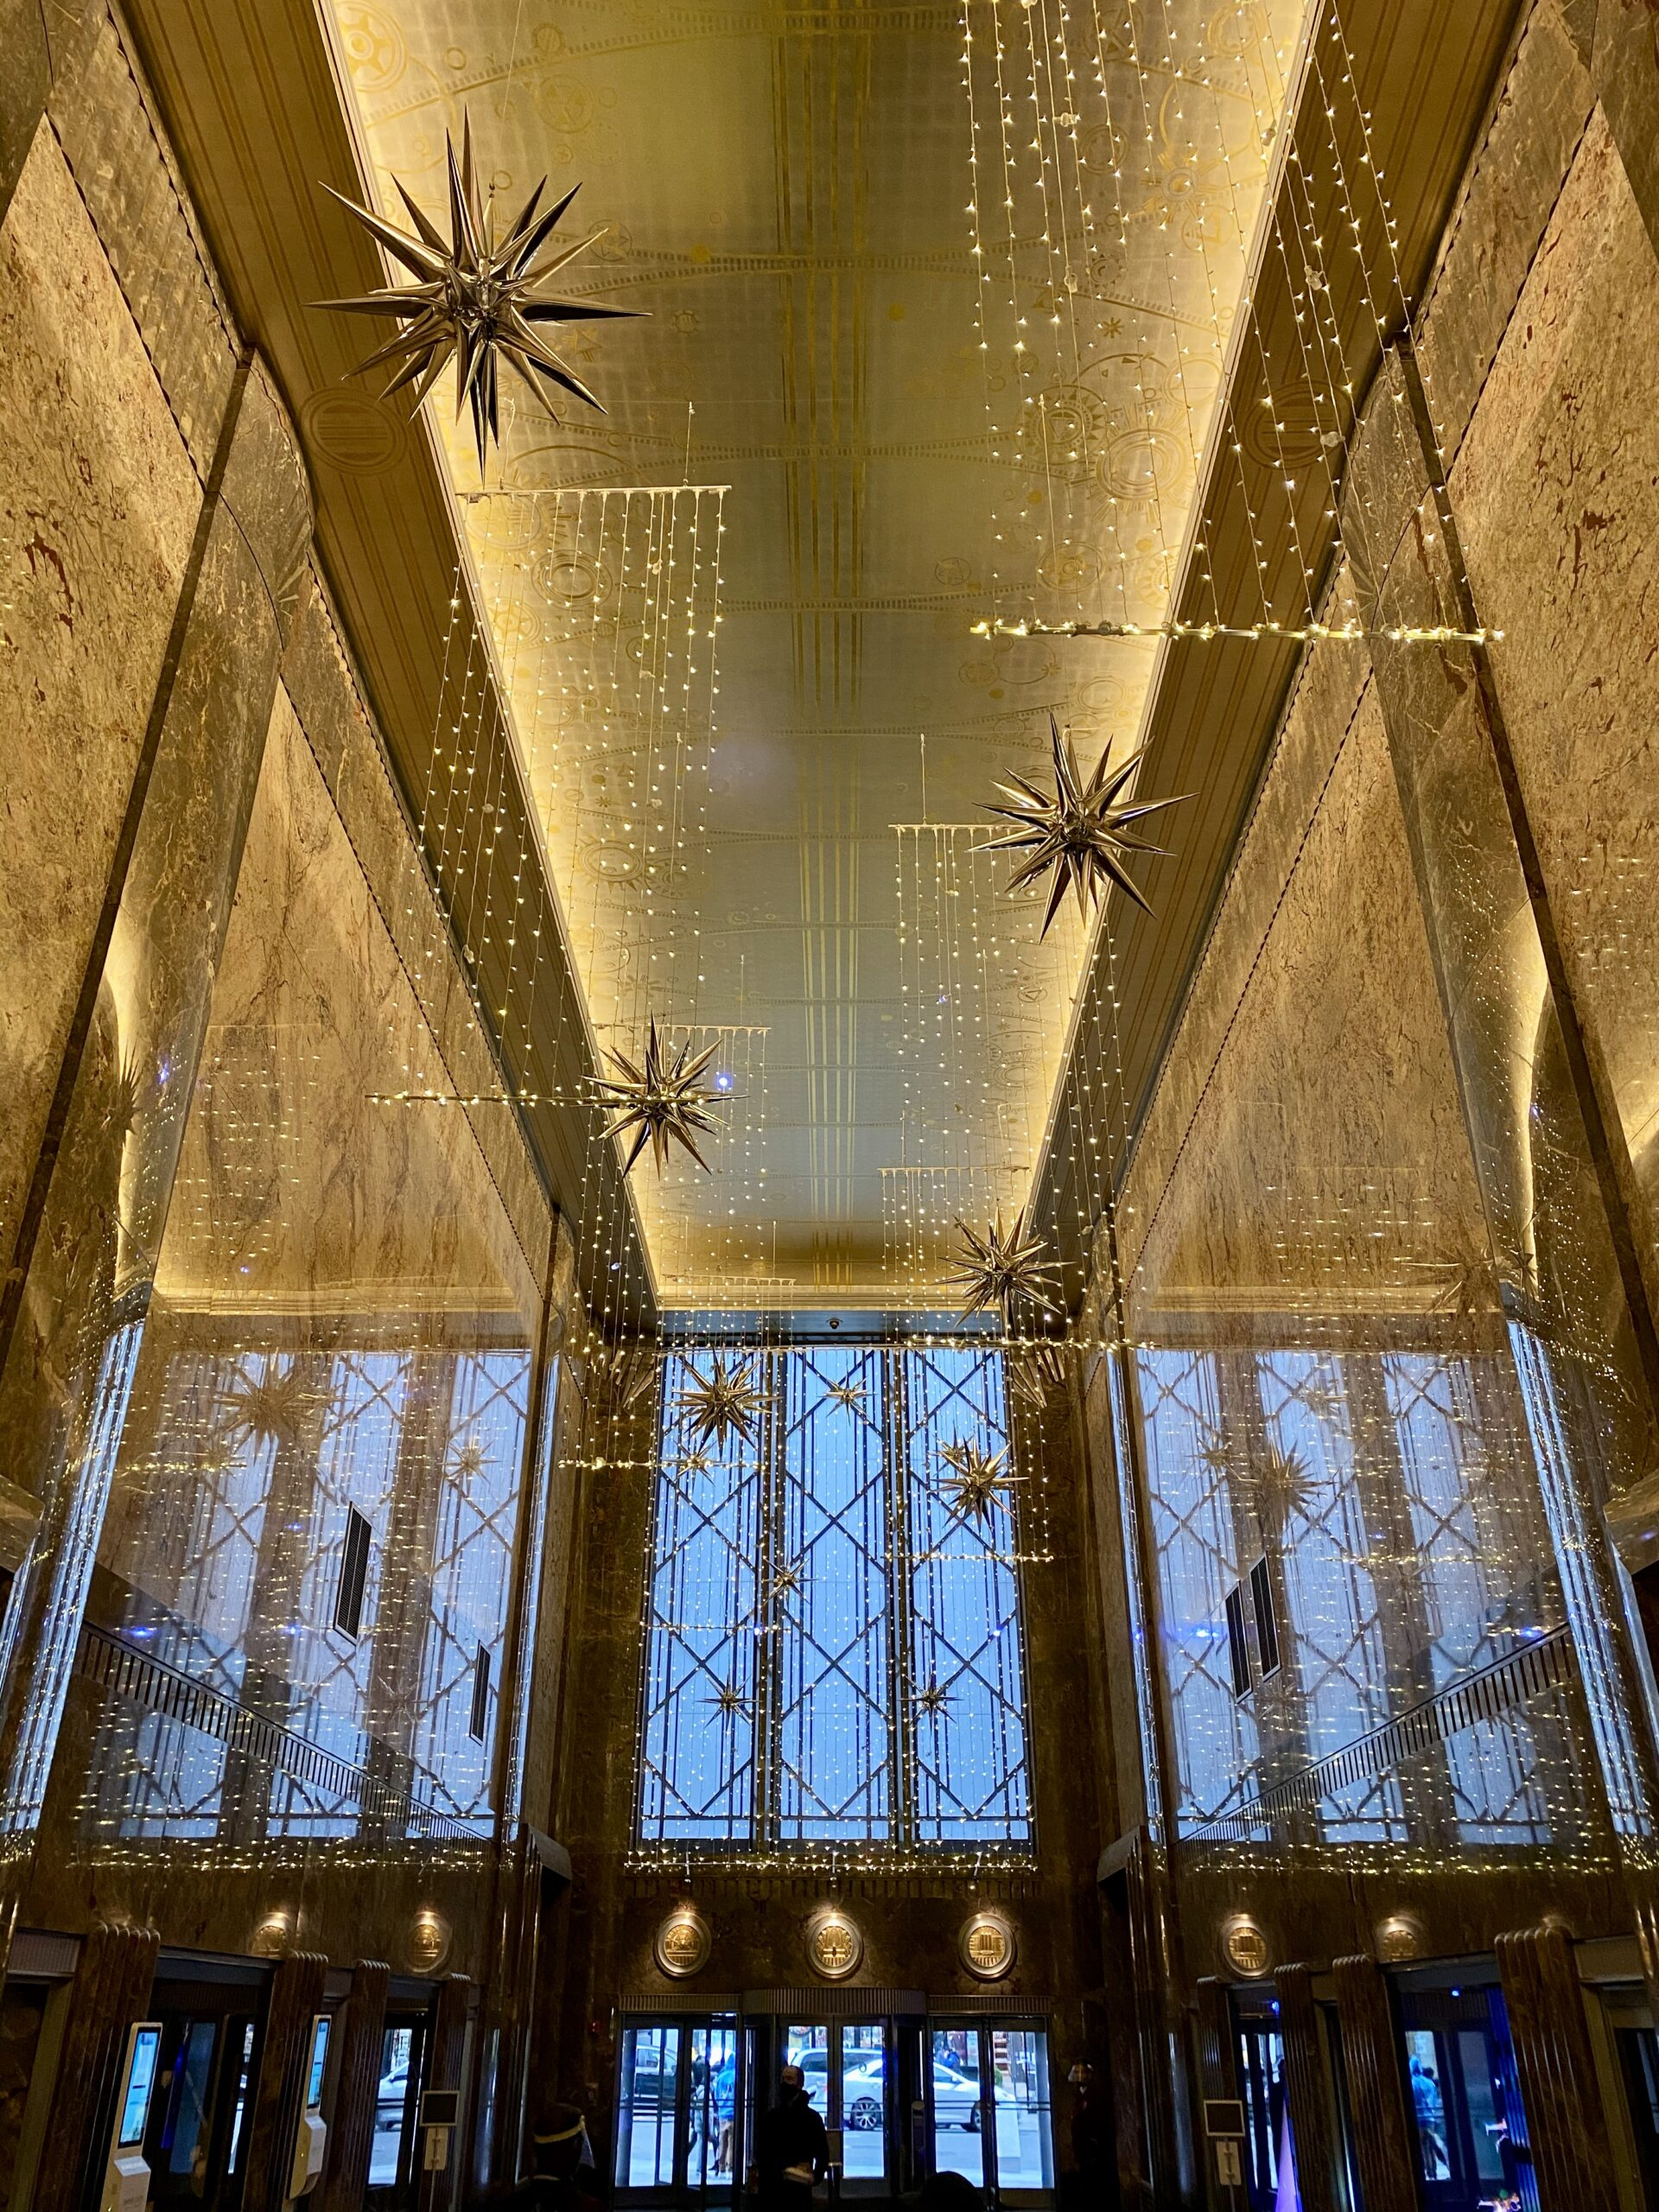 Green Arc Lighting Announces the Completion of Ground-Floor Lobby LED Lighting Conversion at the Empire State Building